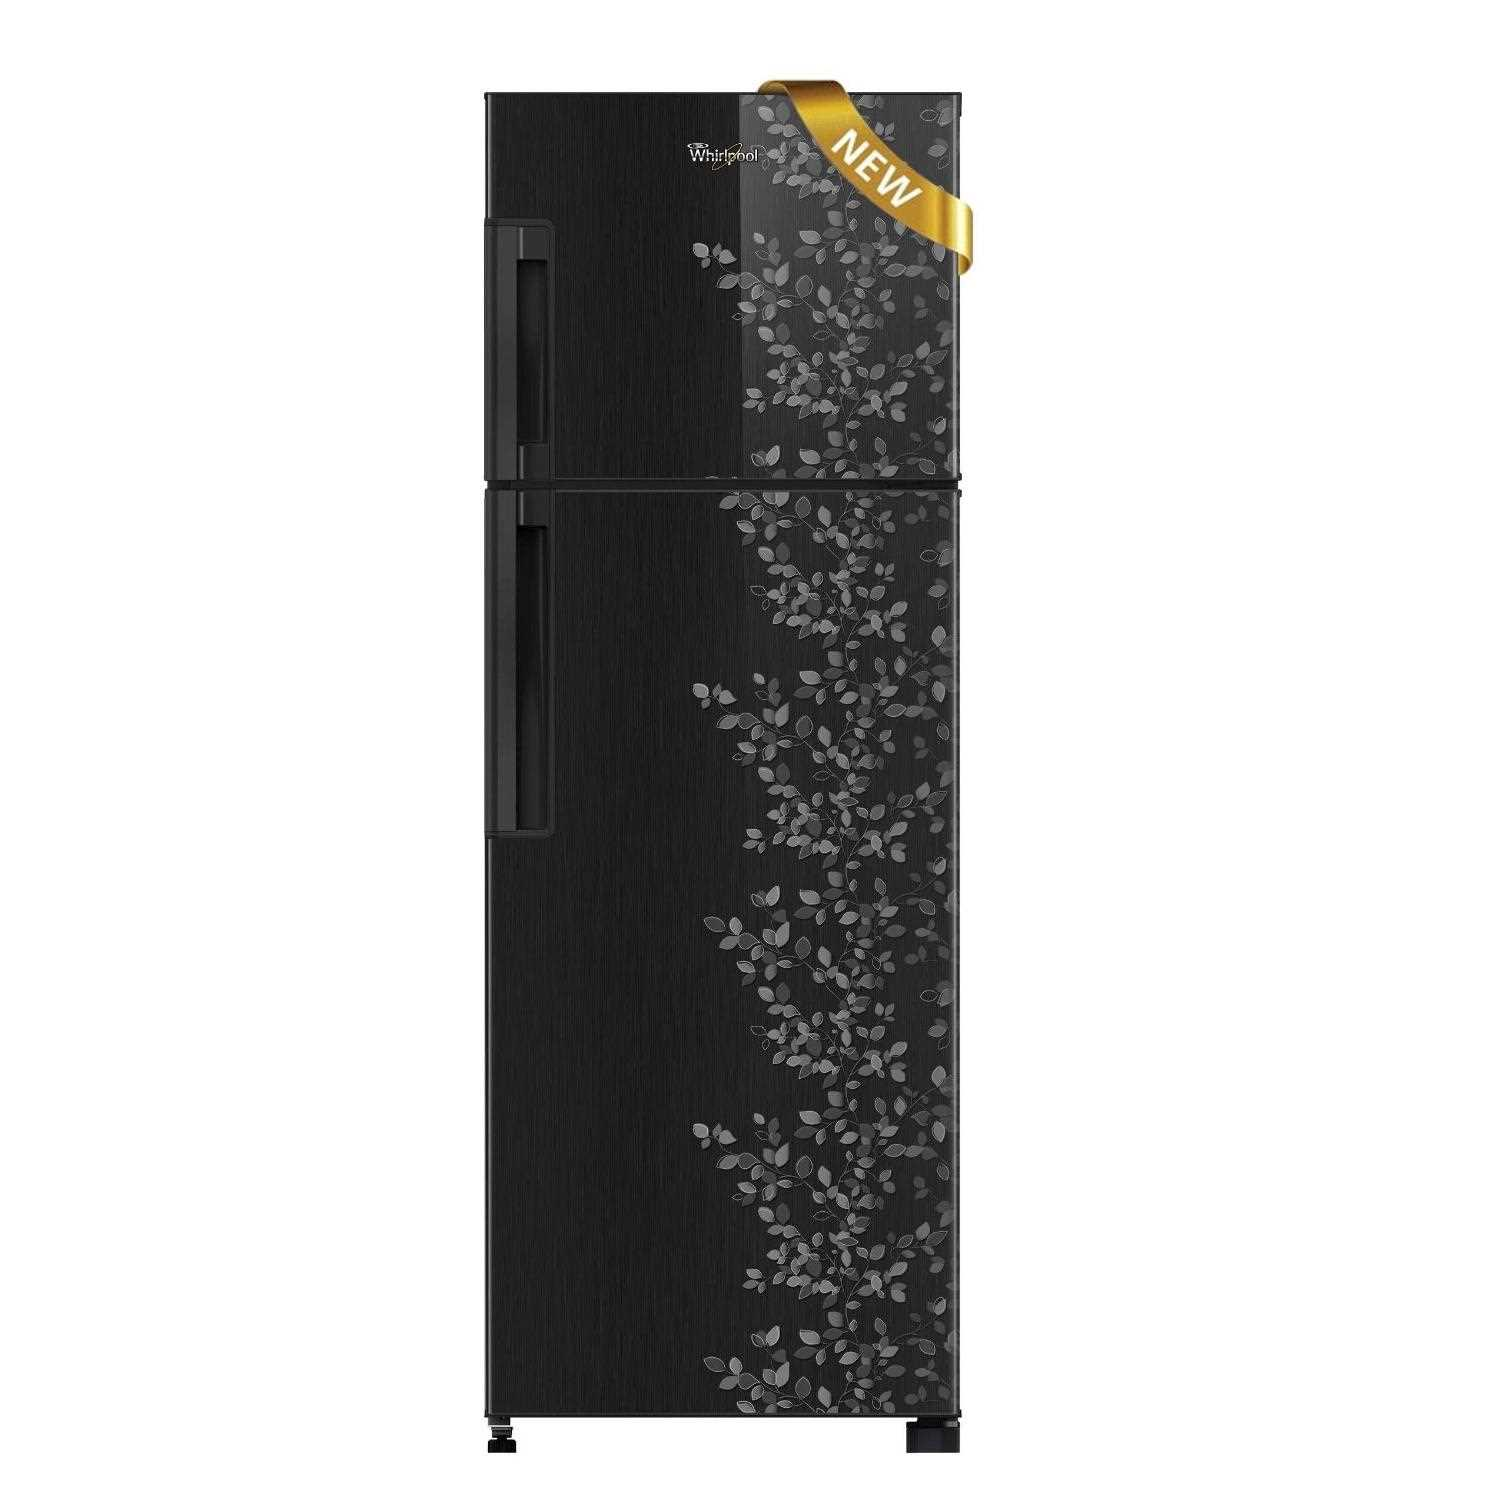 whirlpool 2 door refrigerator. whirlpool neo ic275 royal 4s double door 262 litres frost free refrigerator price {24 nov 2017} | neo reviews and specifications 2